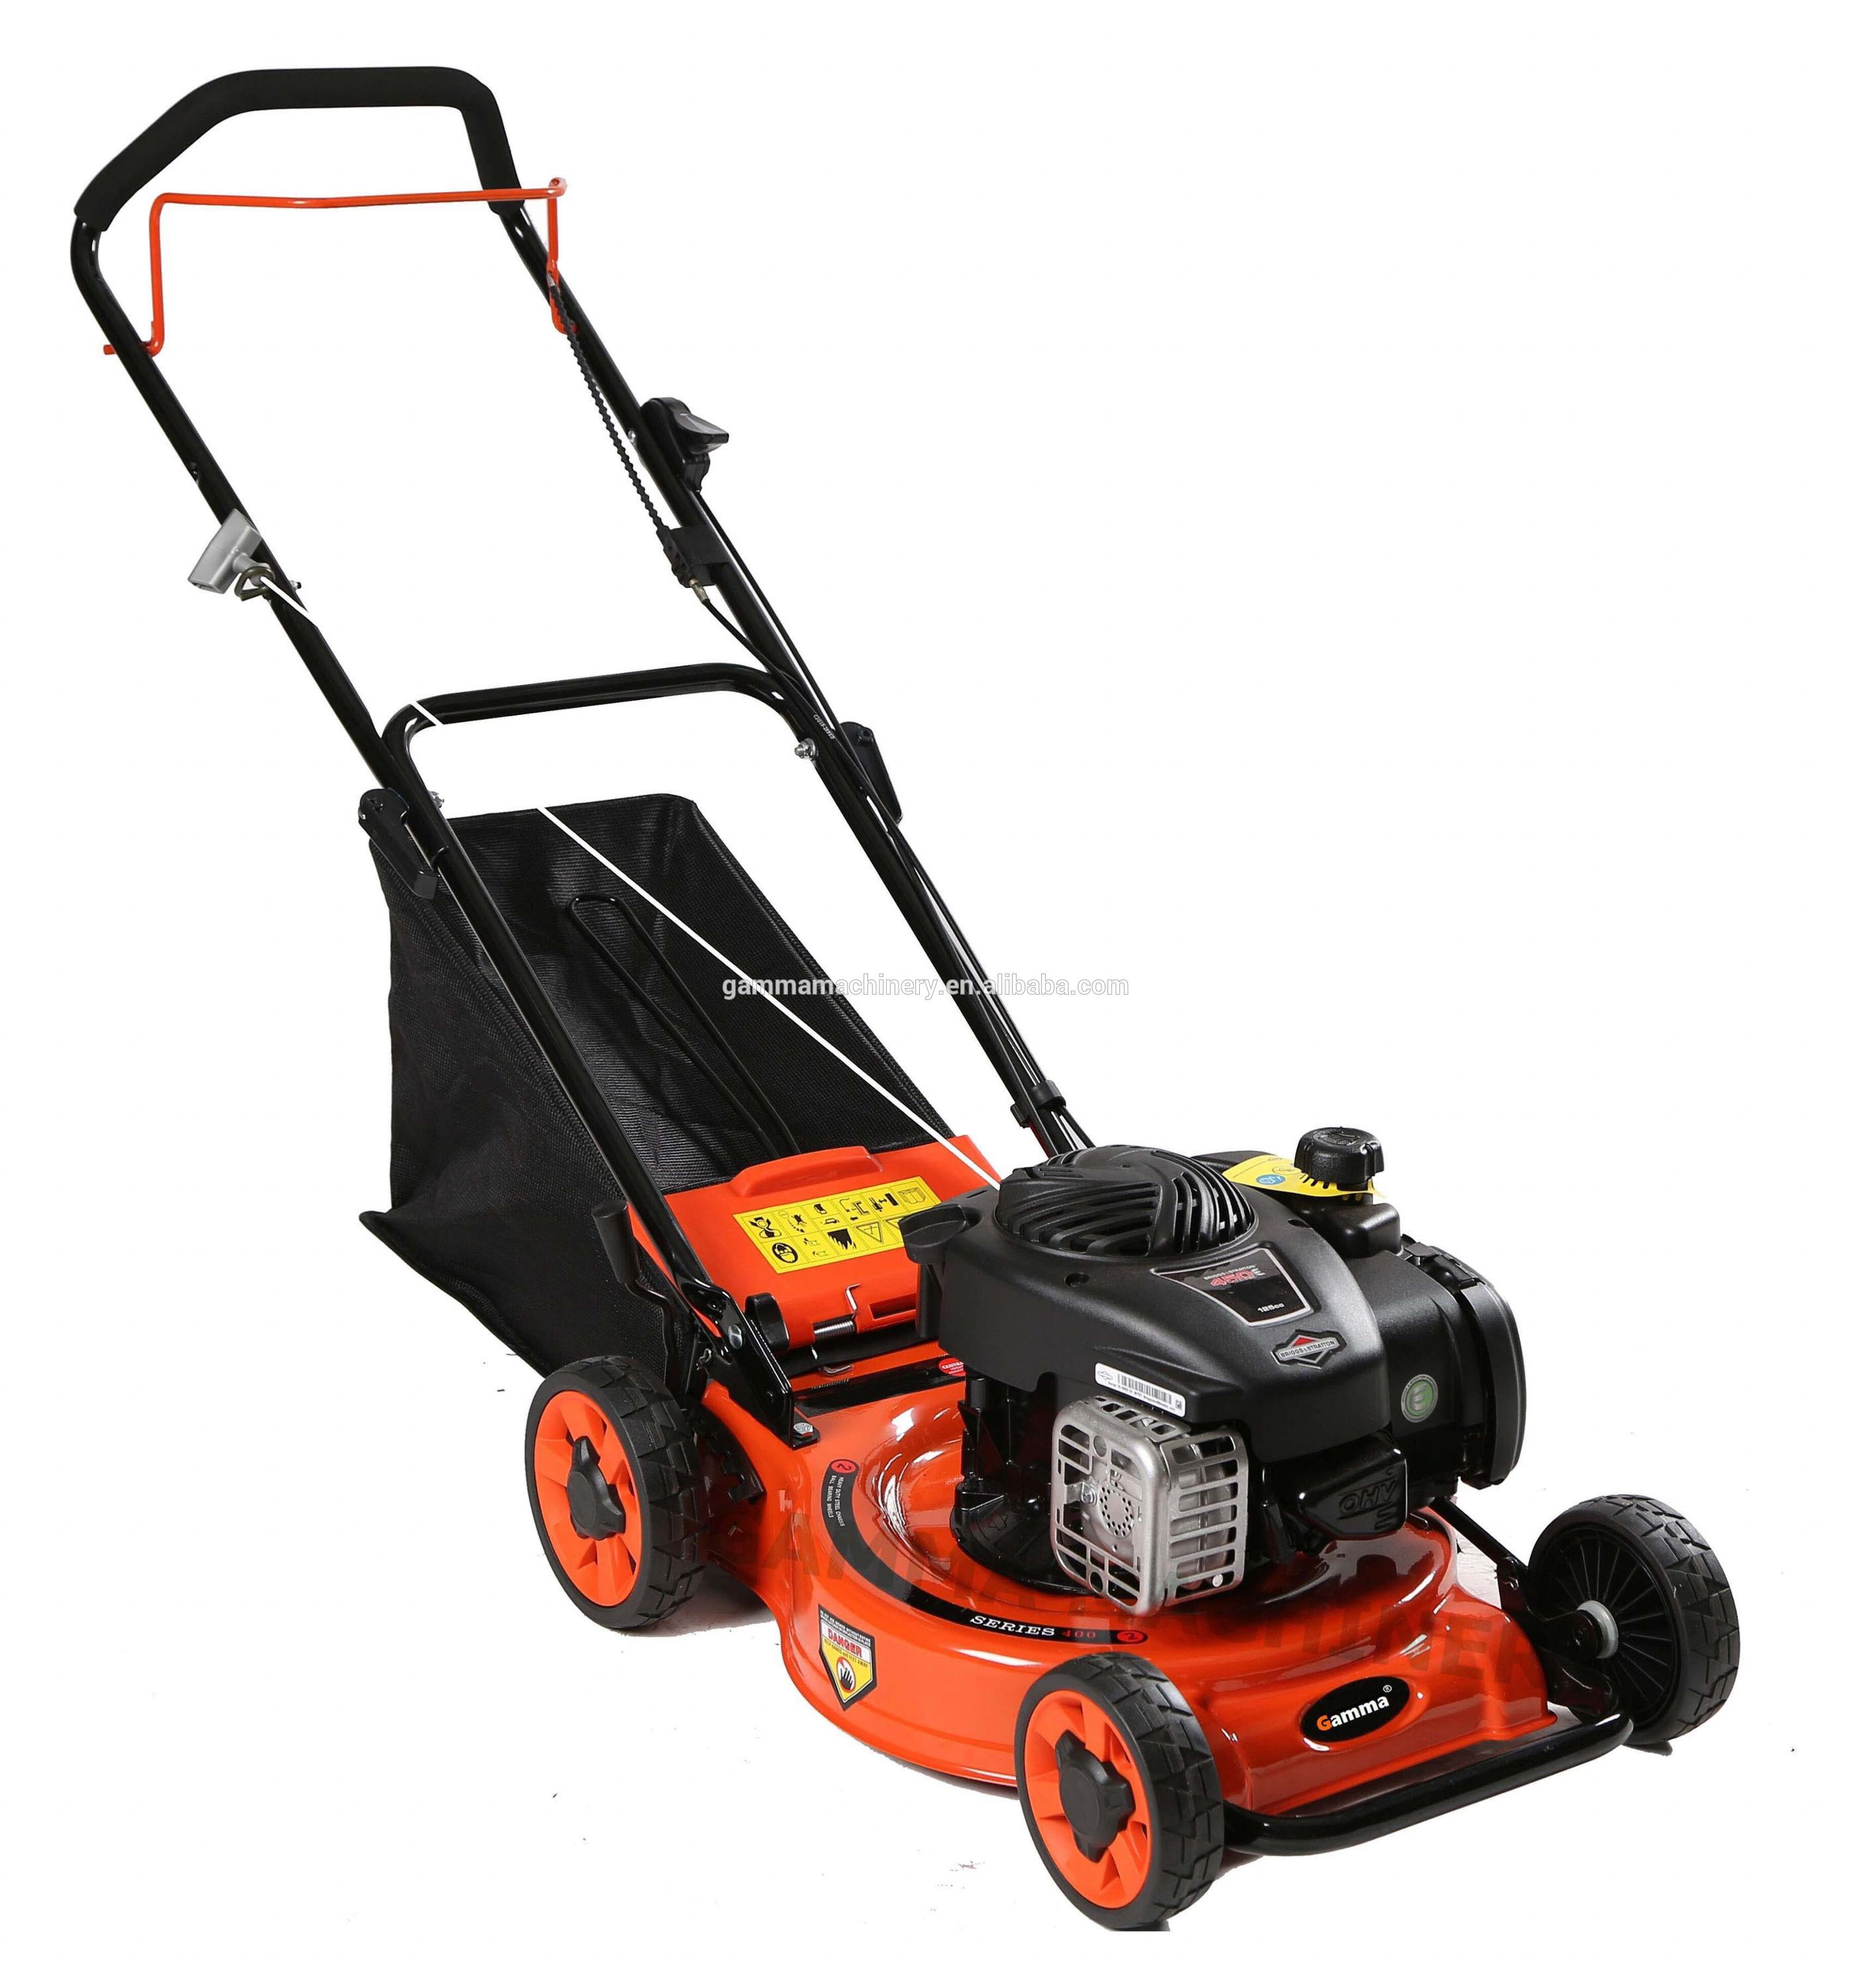 2793x3000 Hand Push Lawn Mower, Hand Push Lawn Mower Suppliers